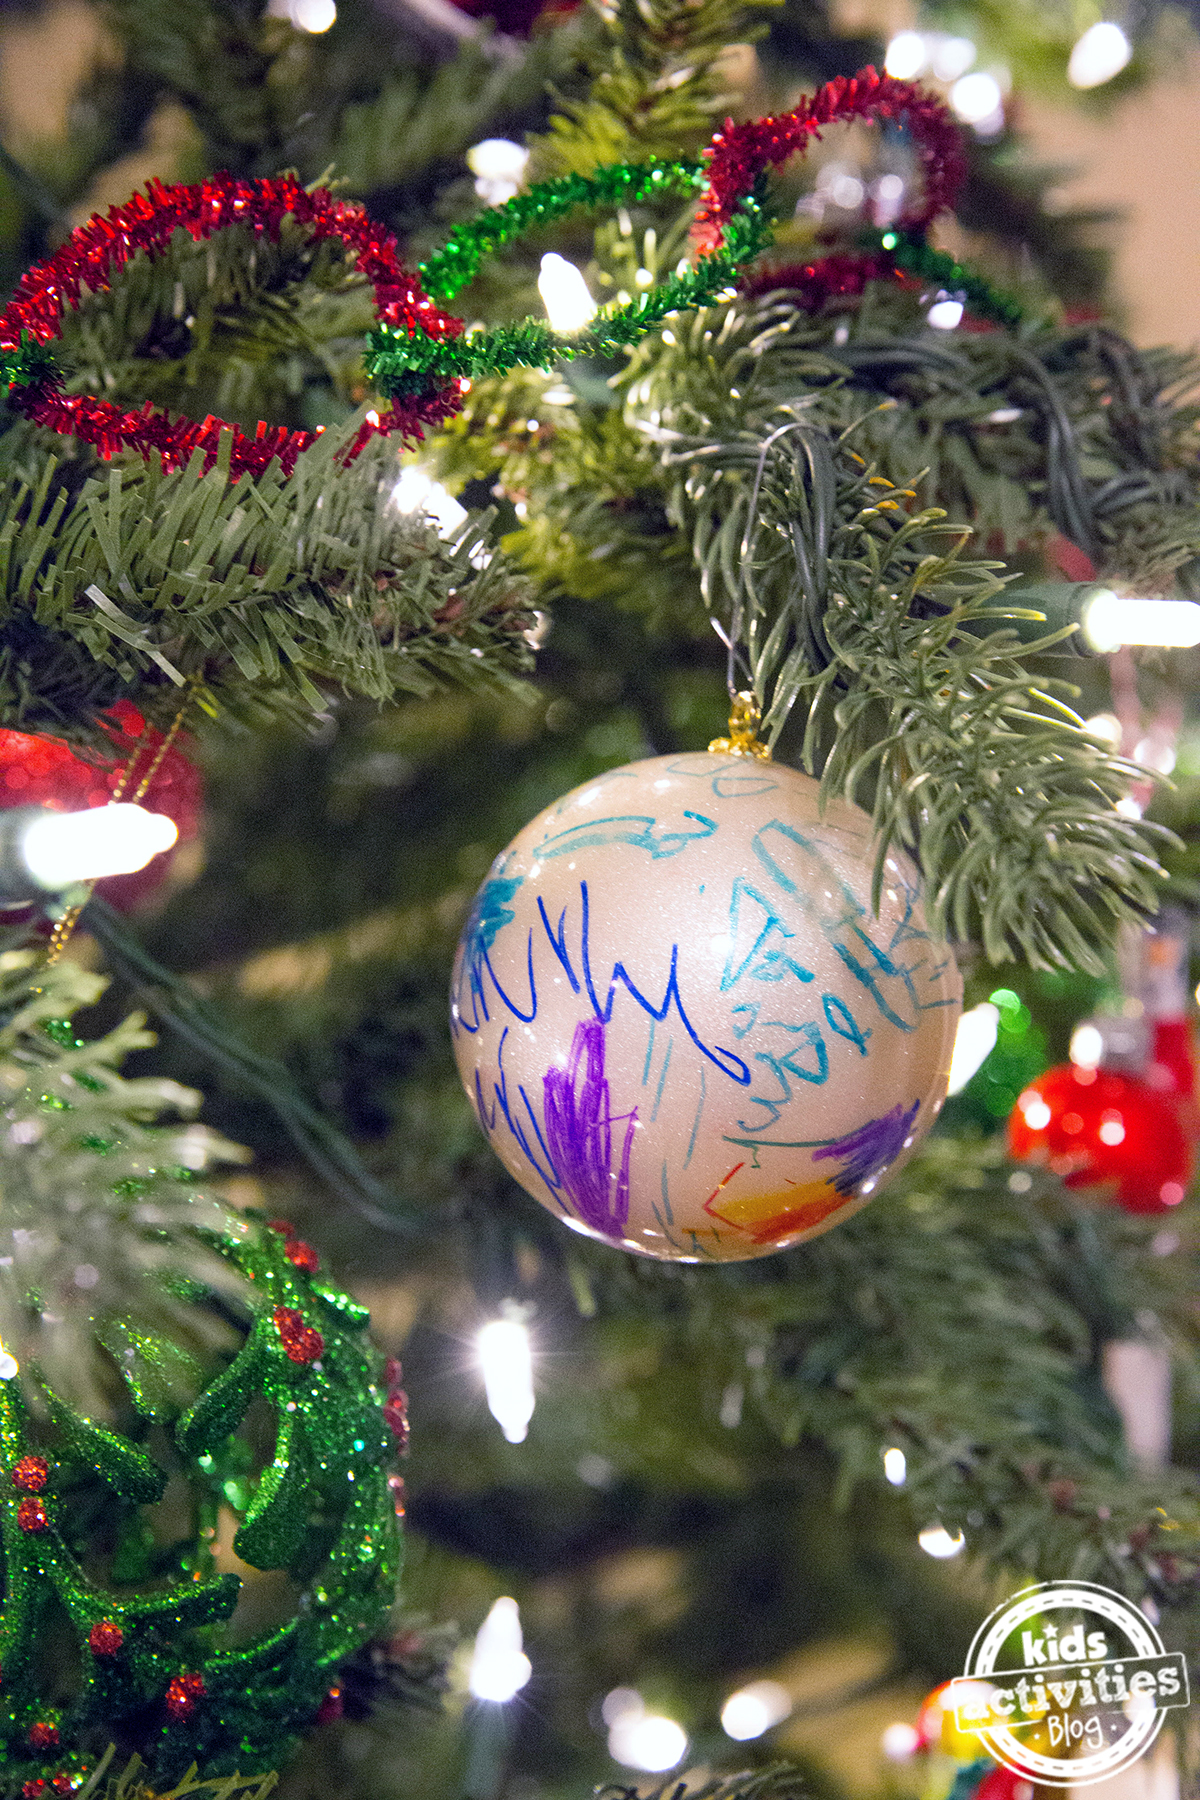 I love this Christmas ornament art where kids have colored on plain white ornaments with blue, purple, and orange markers.